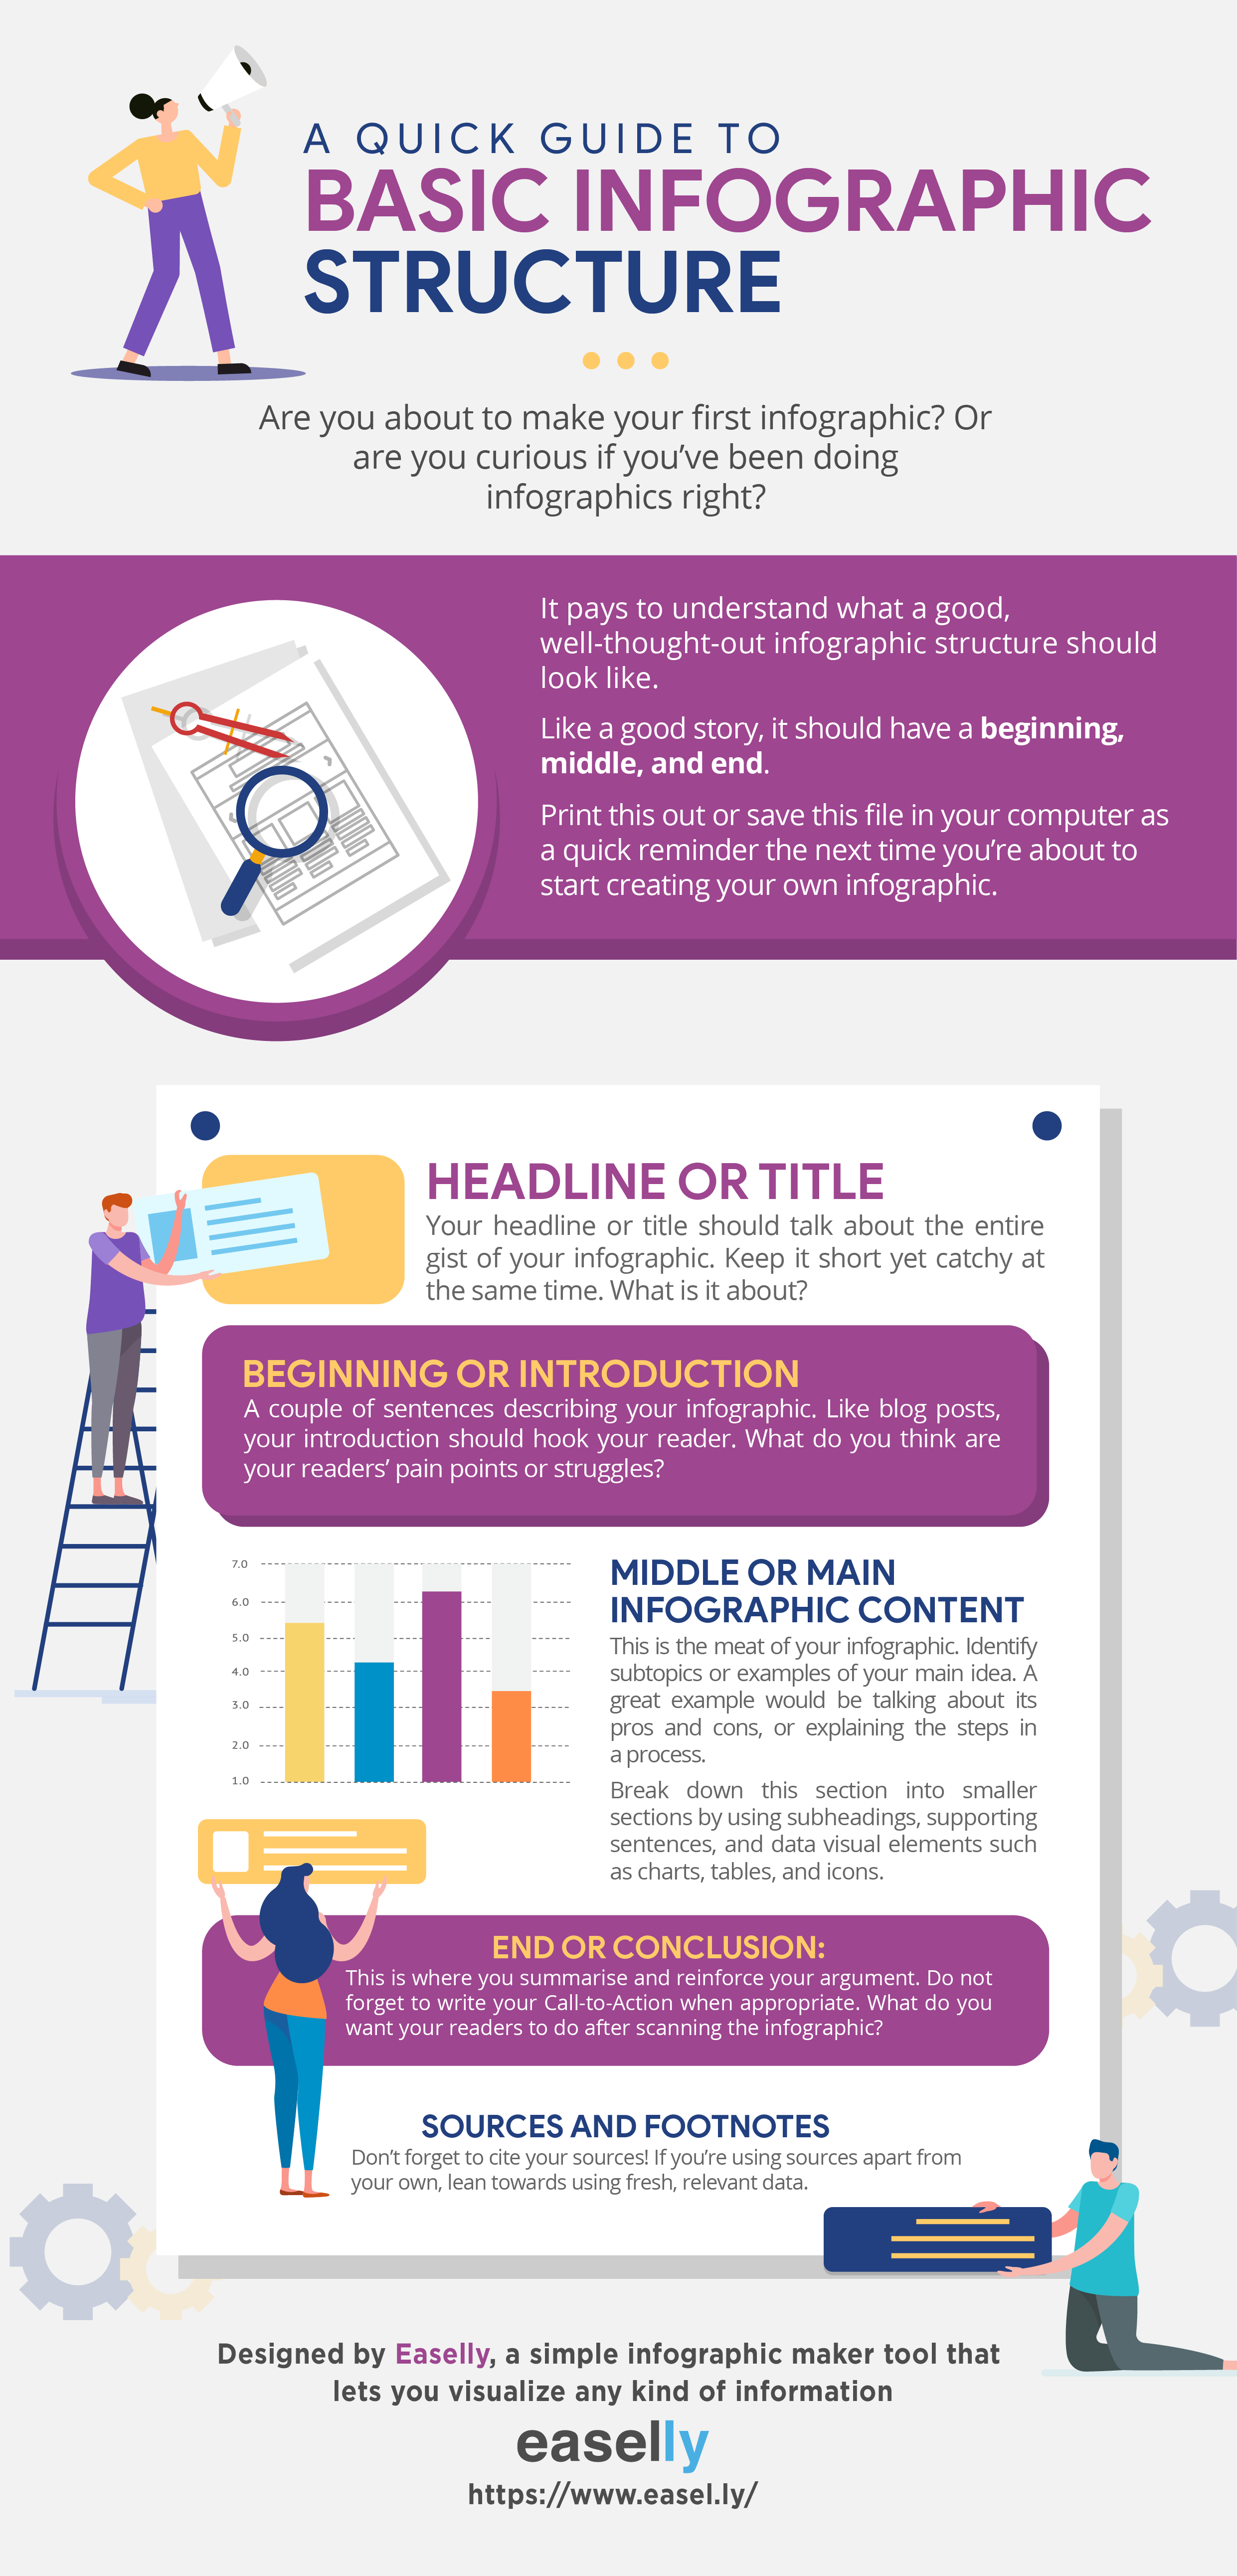 The basic infographic stucture is composed of the headline, introduction, main content, souces, and conclusion.